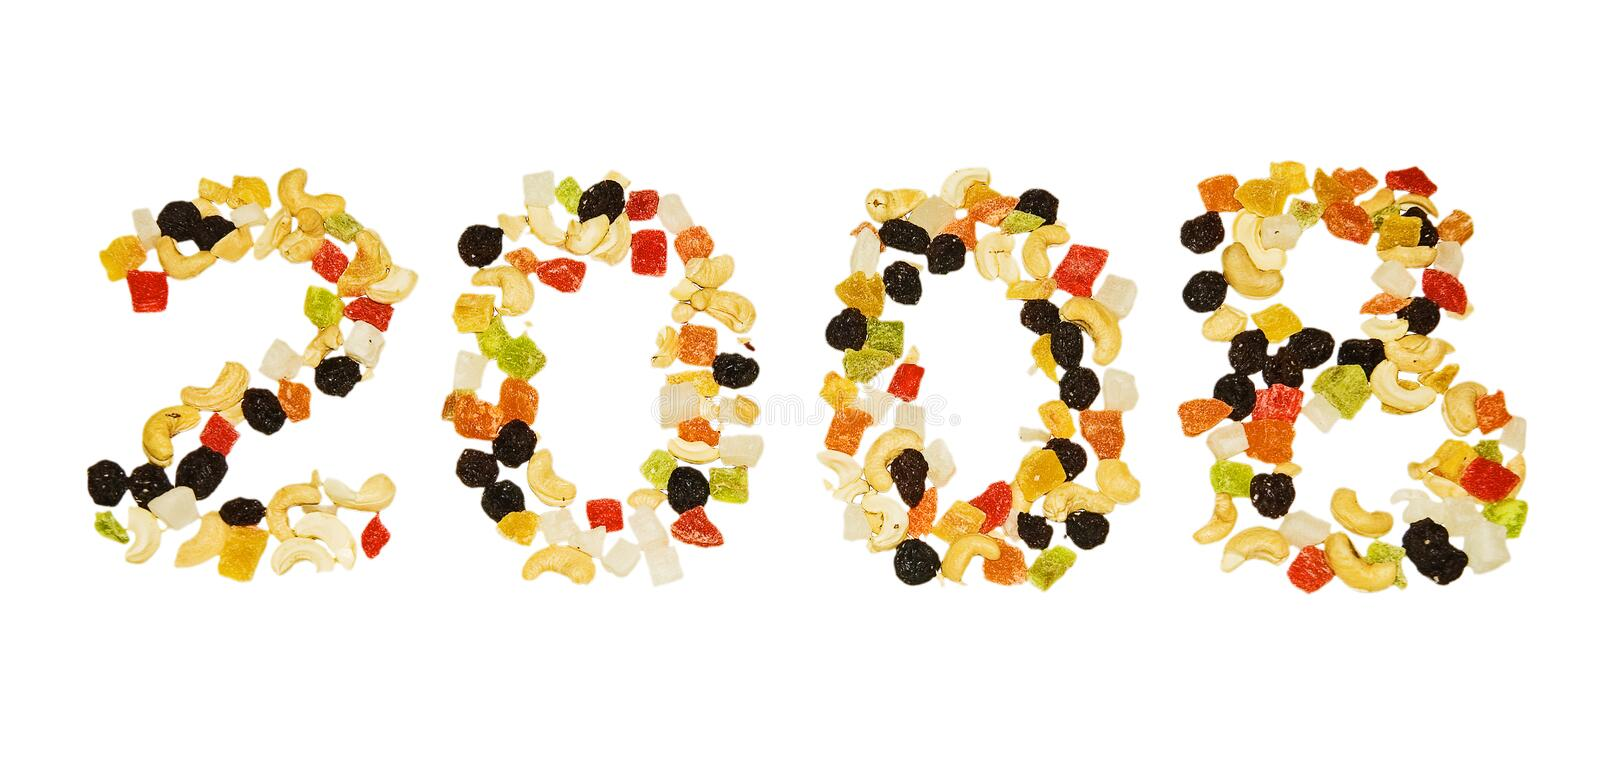 Dried fruits 2008 stock photography